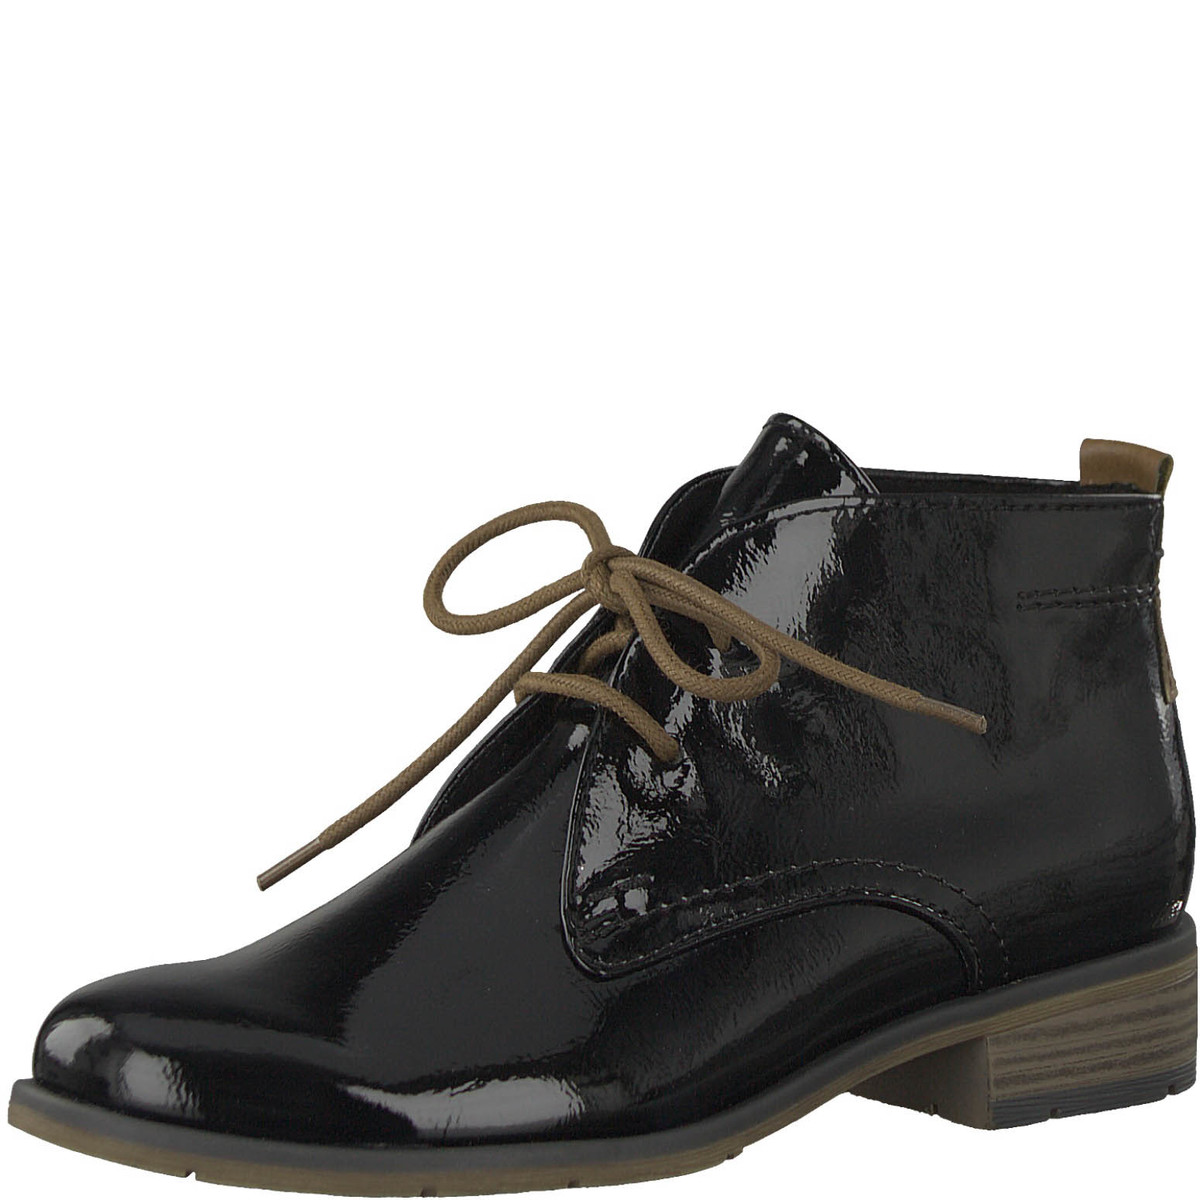 66bab0d192f85 Marco Tozzi Ankle Boots - Black patent - 25118/31/059 RAPALL 85